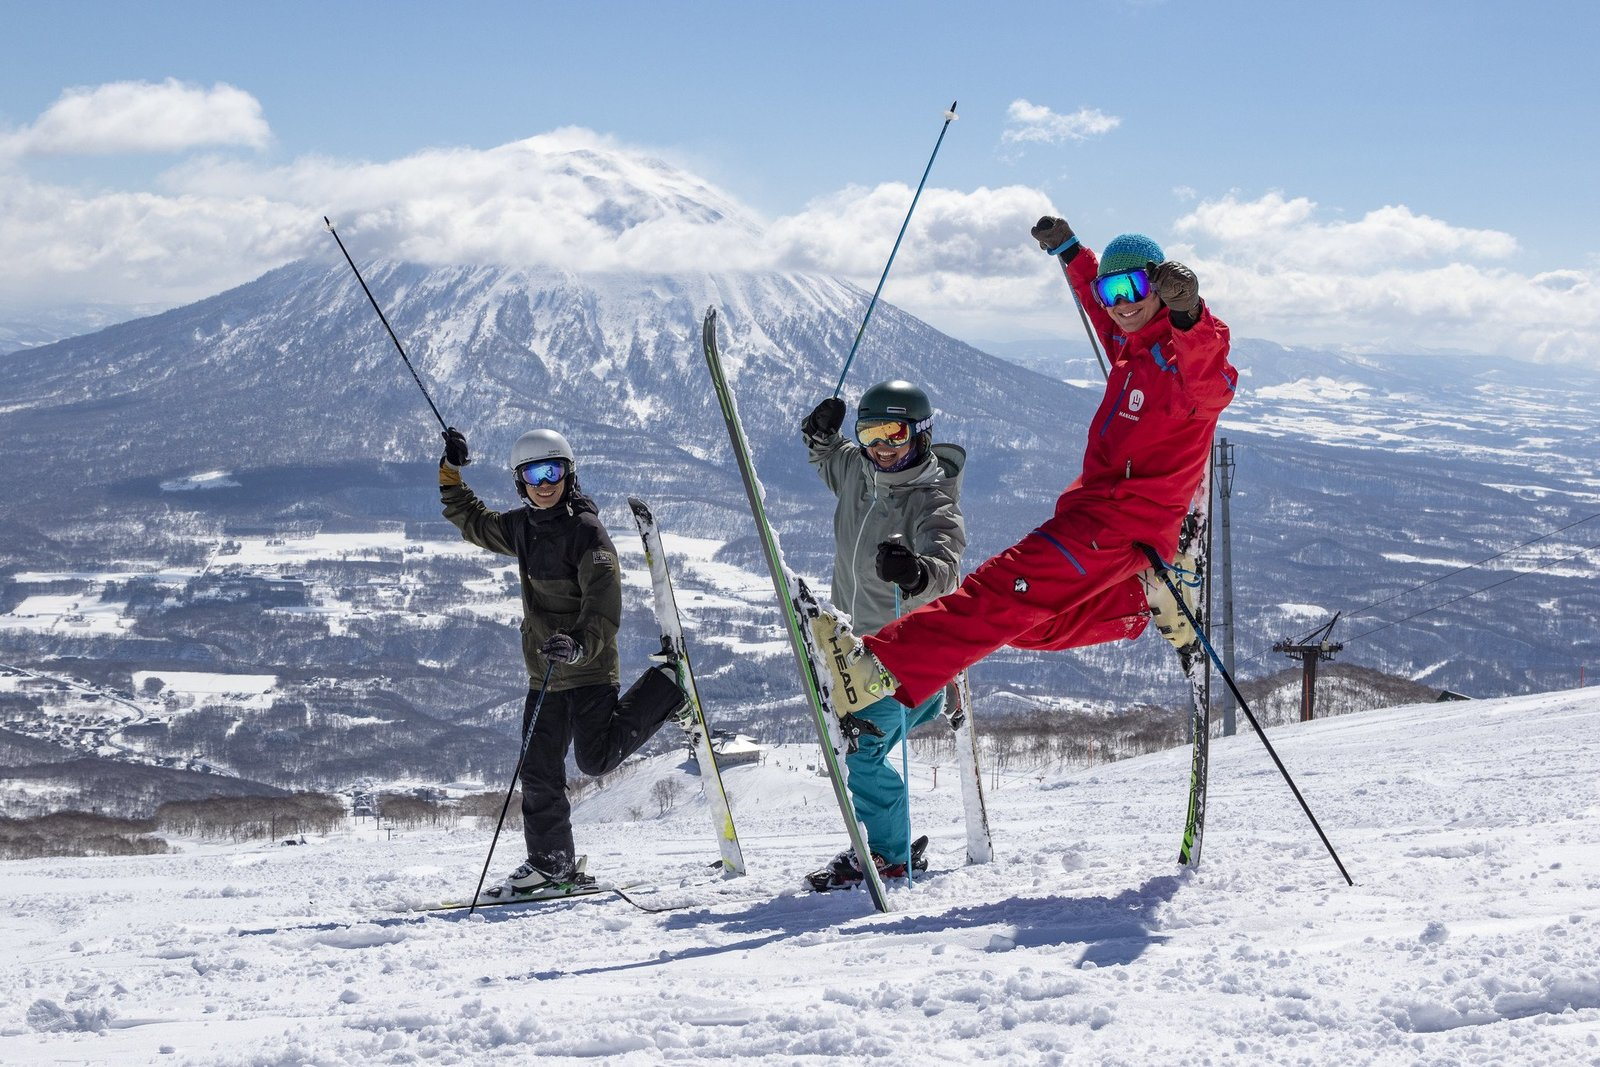 three skiers having fun on slope